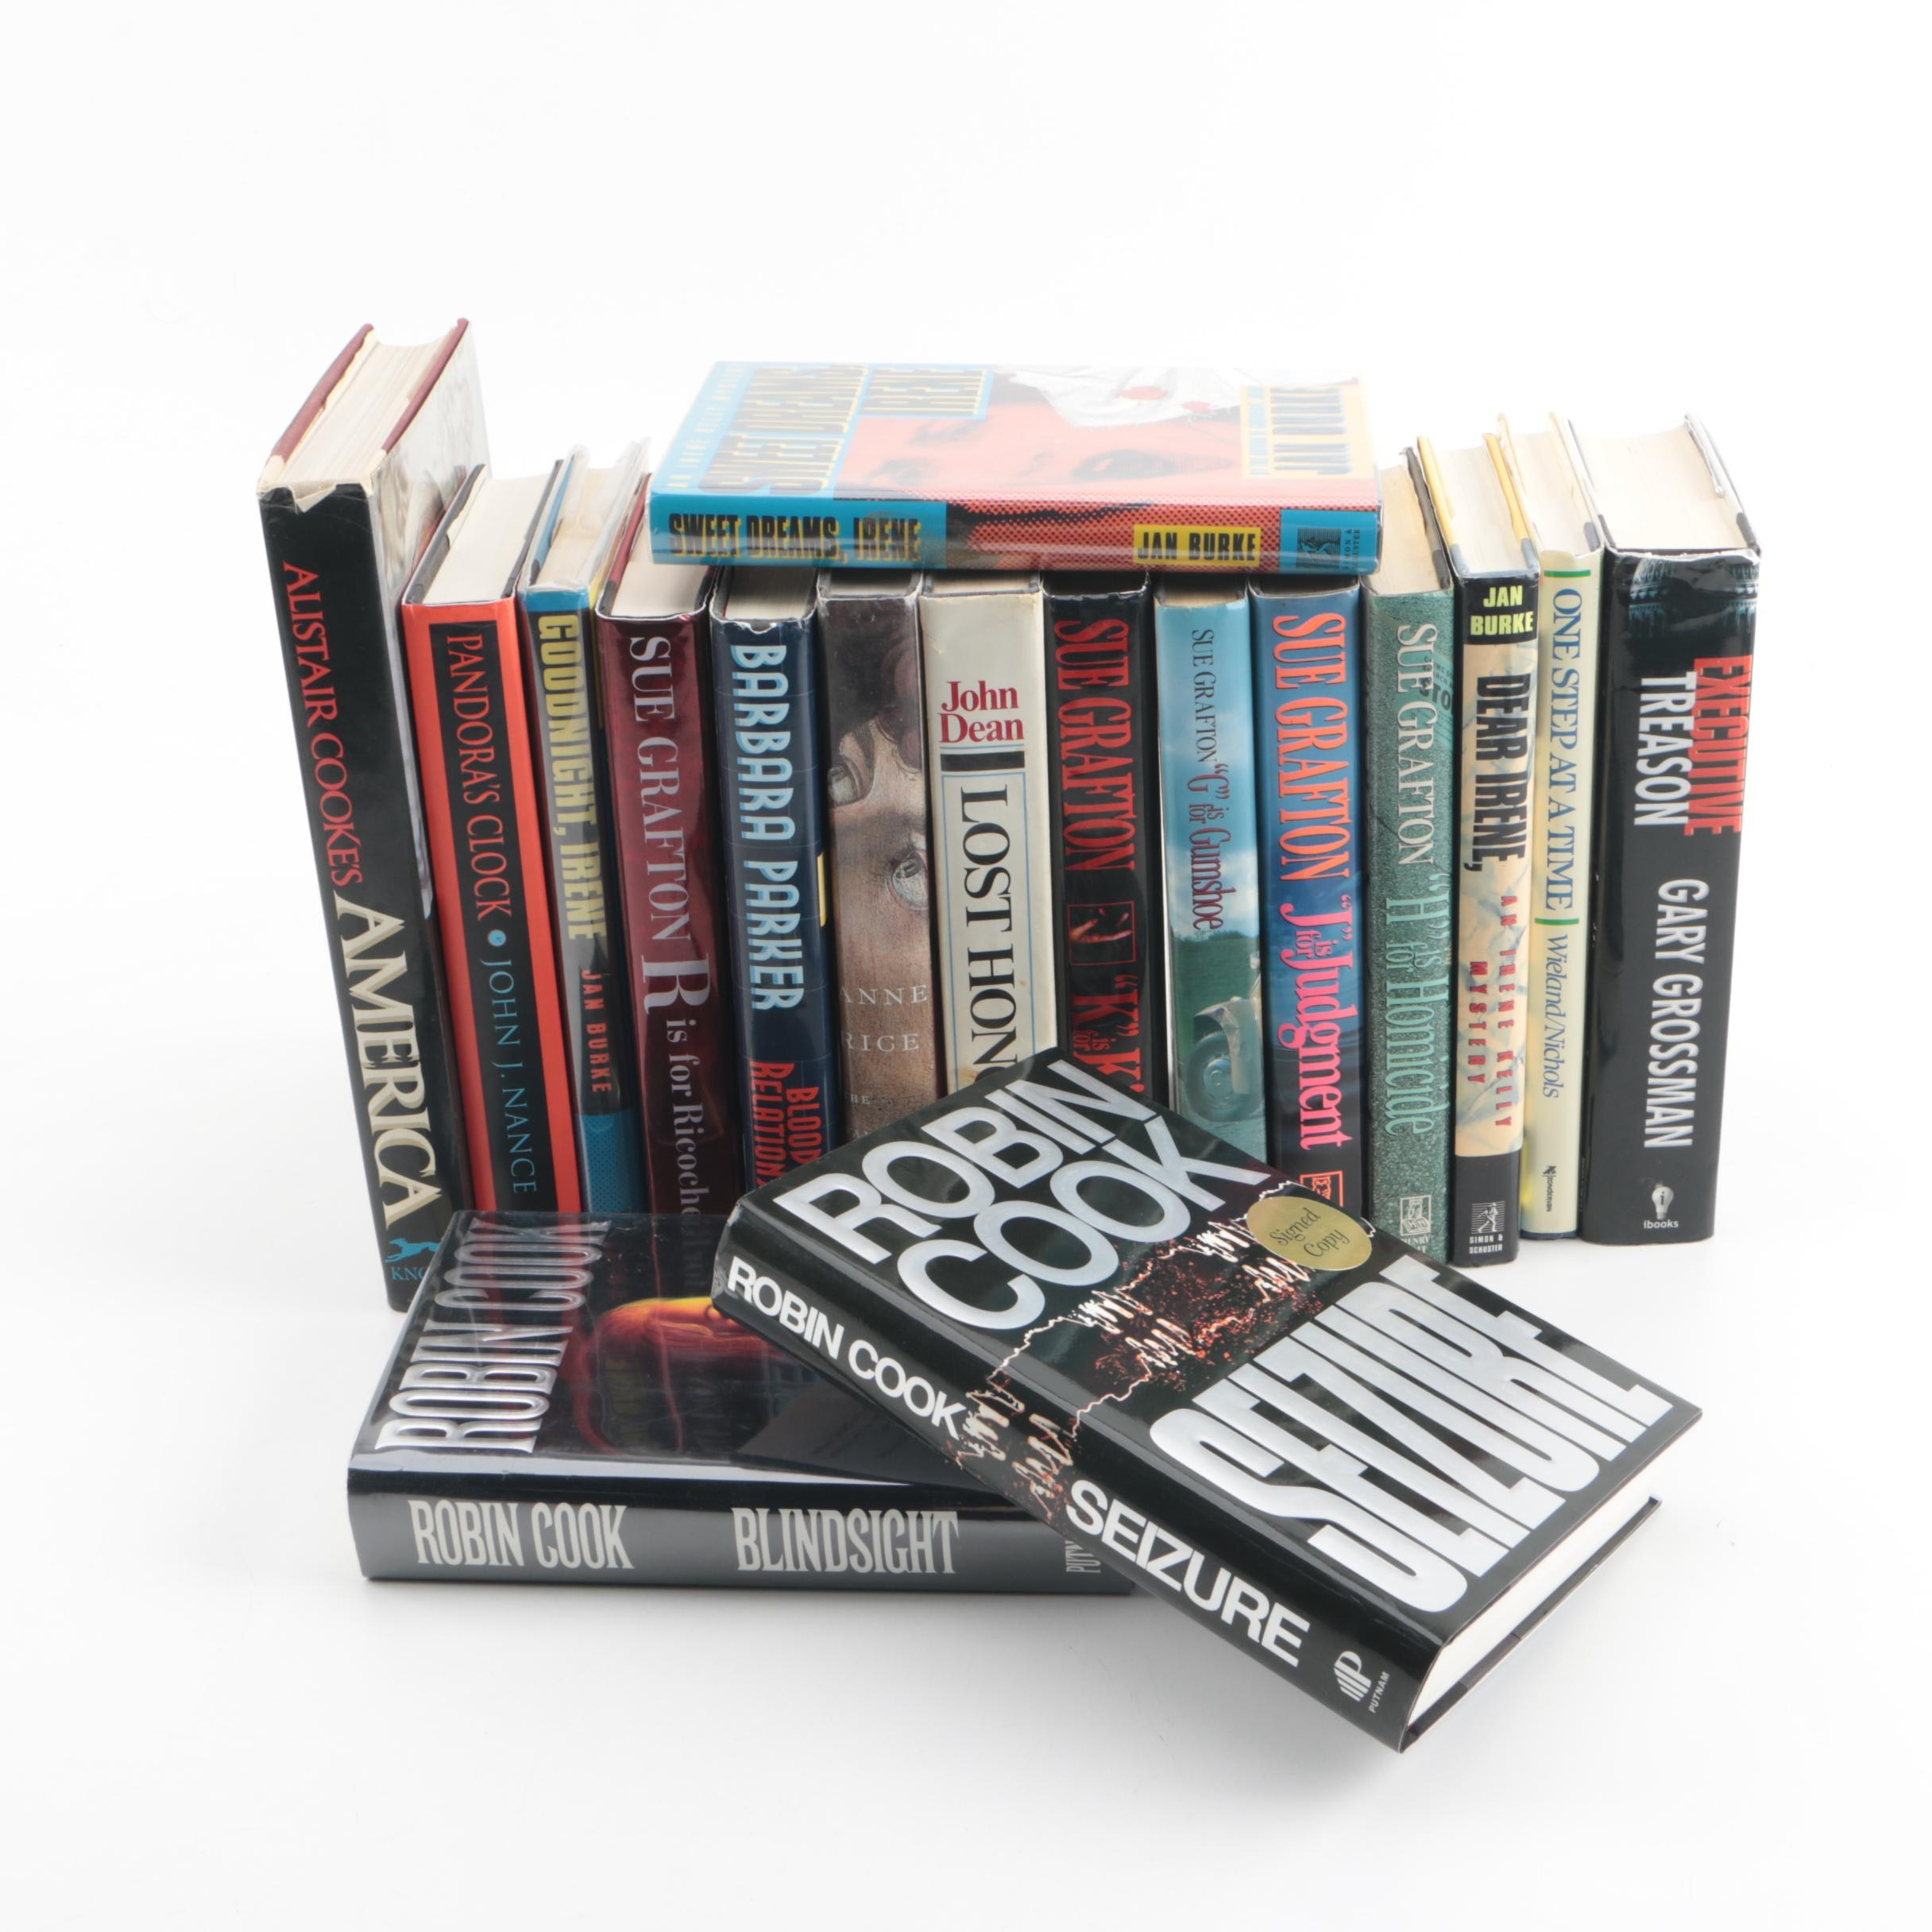 Autographed Mystery and Suspense Novels, including Sue Grafton and Anne Rice